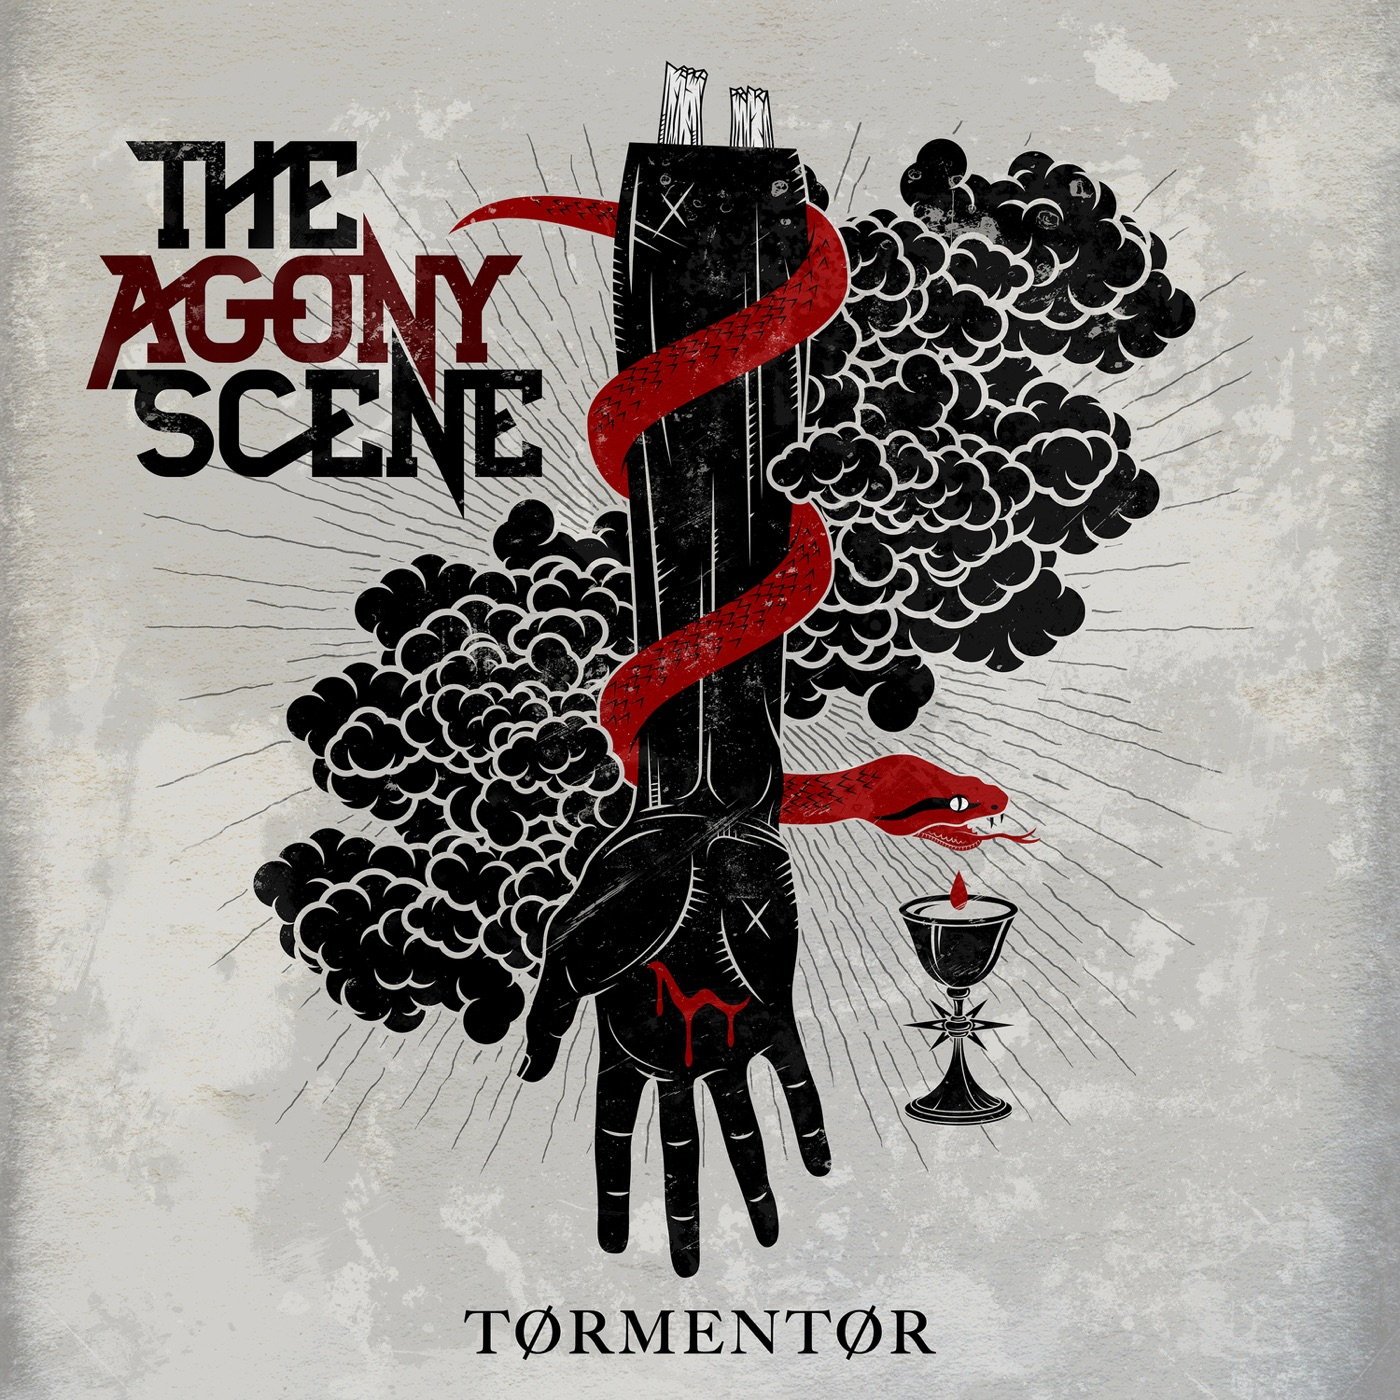 The Agony Scene - The Submissive [Single] (2018)